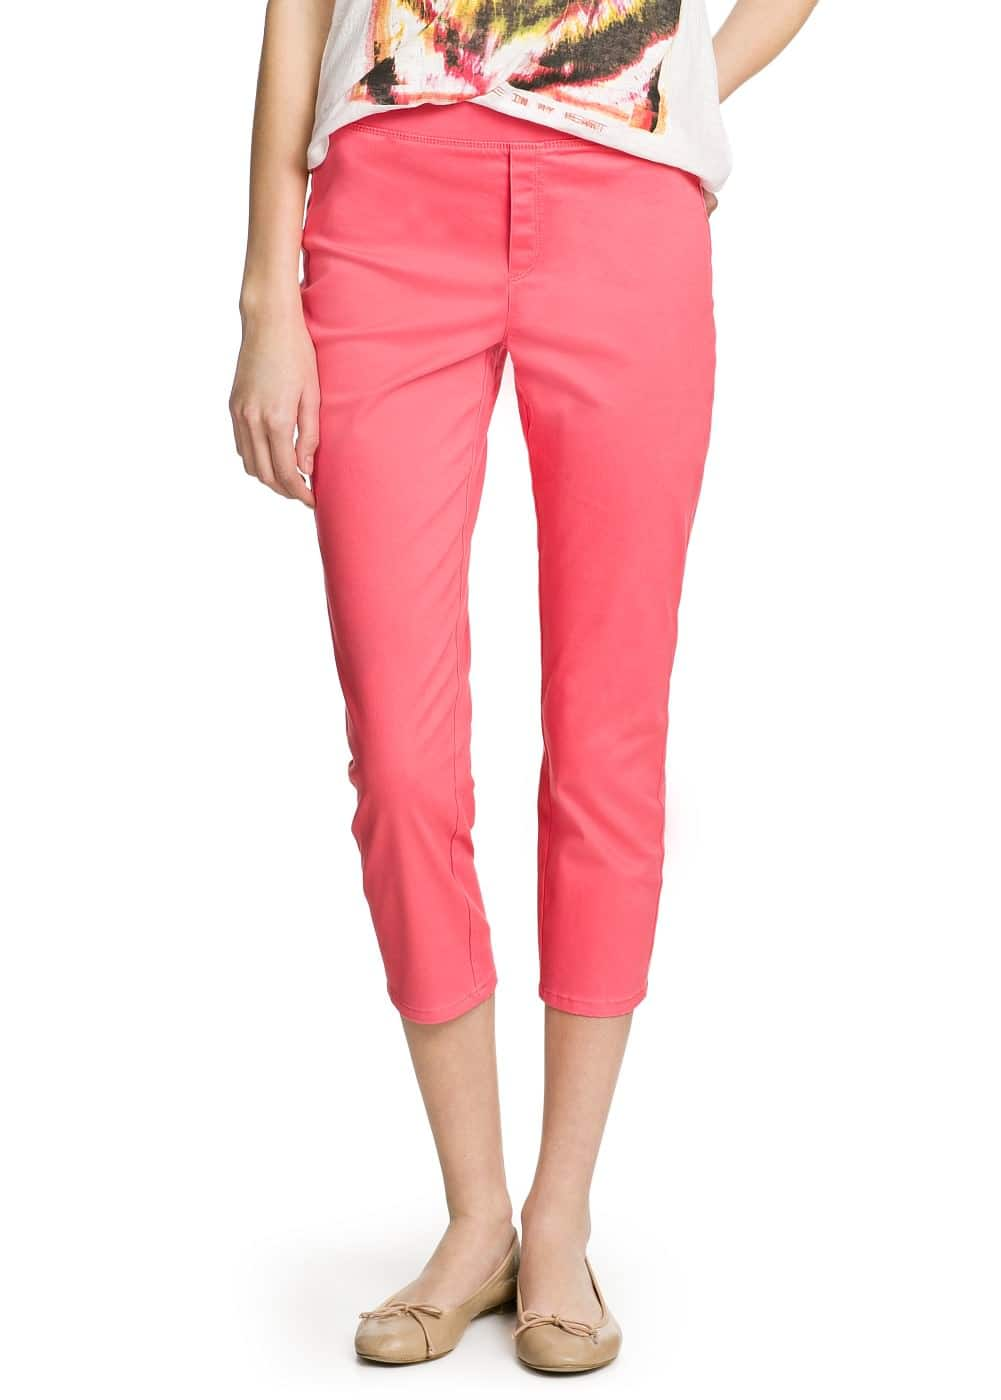 Cotton capri jeggings